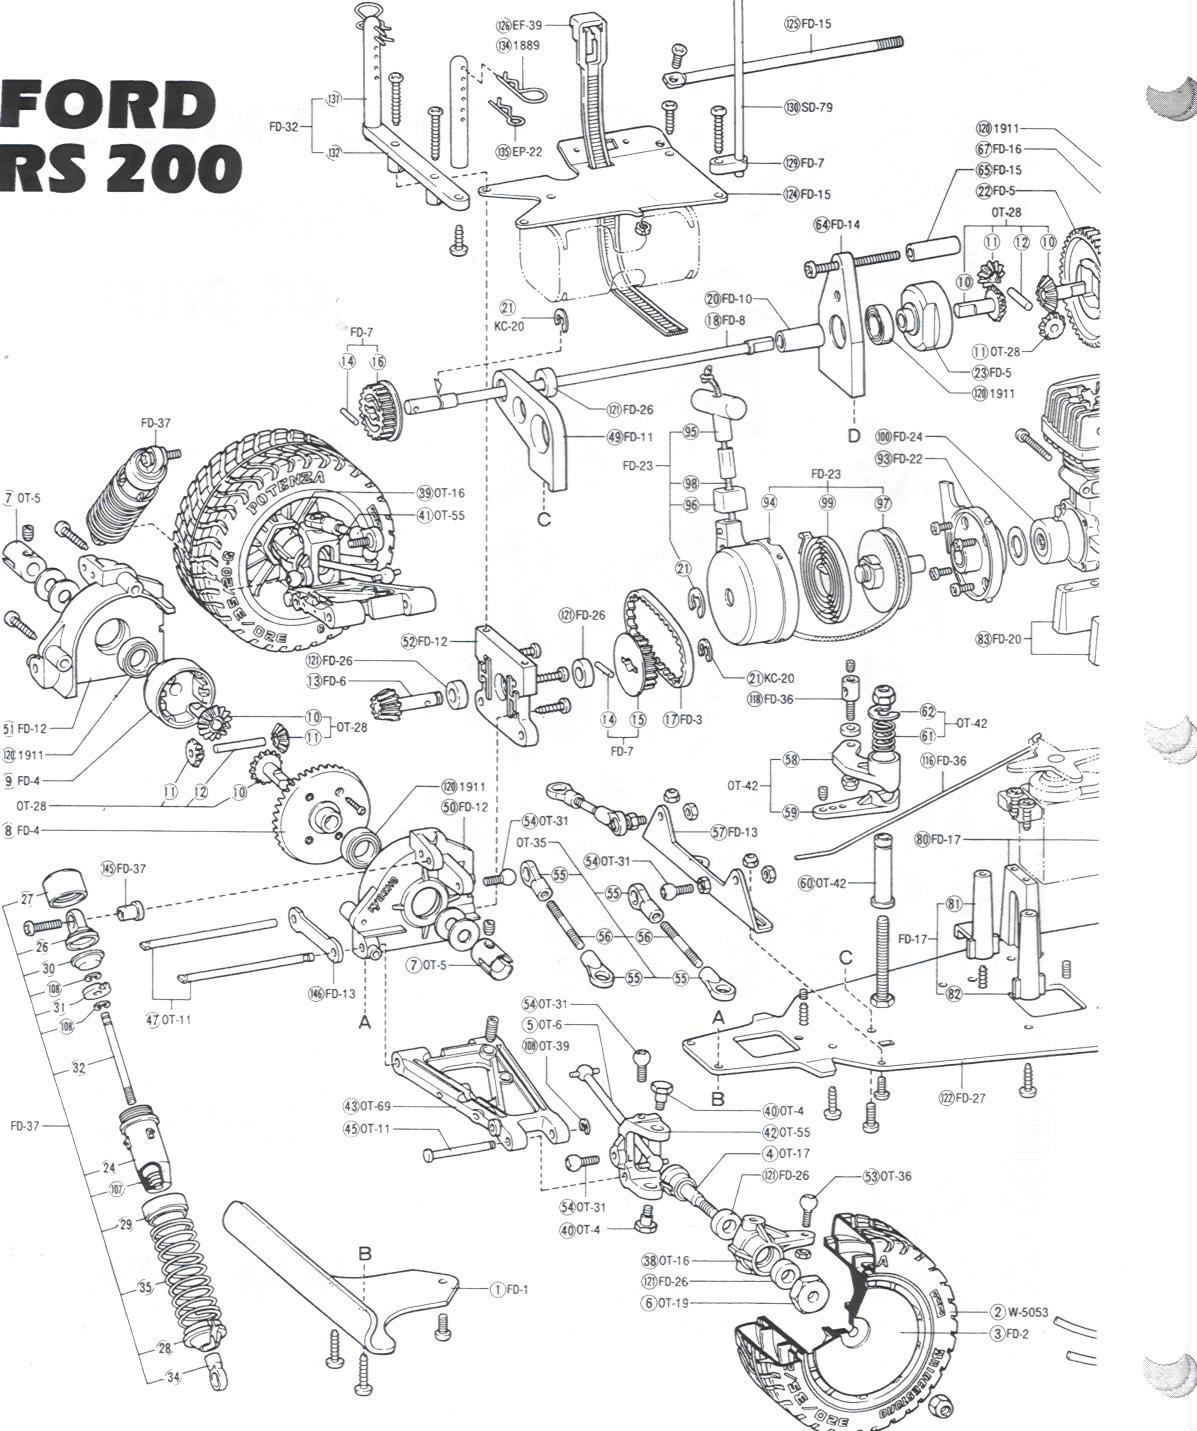 Kyosho Kyoc Ford Rs 200 W Os 10 Page